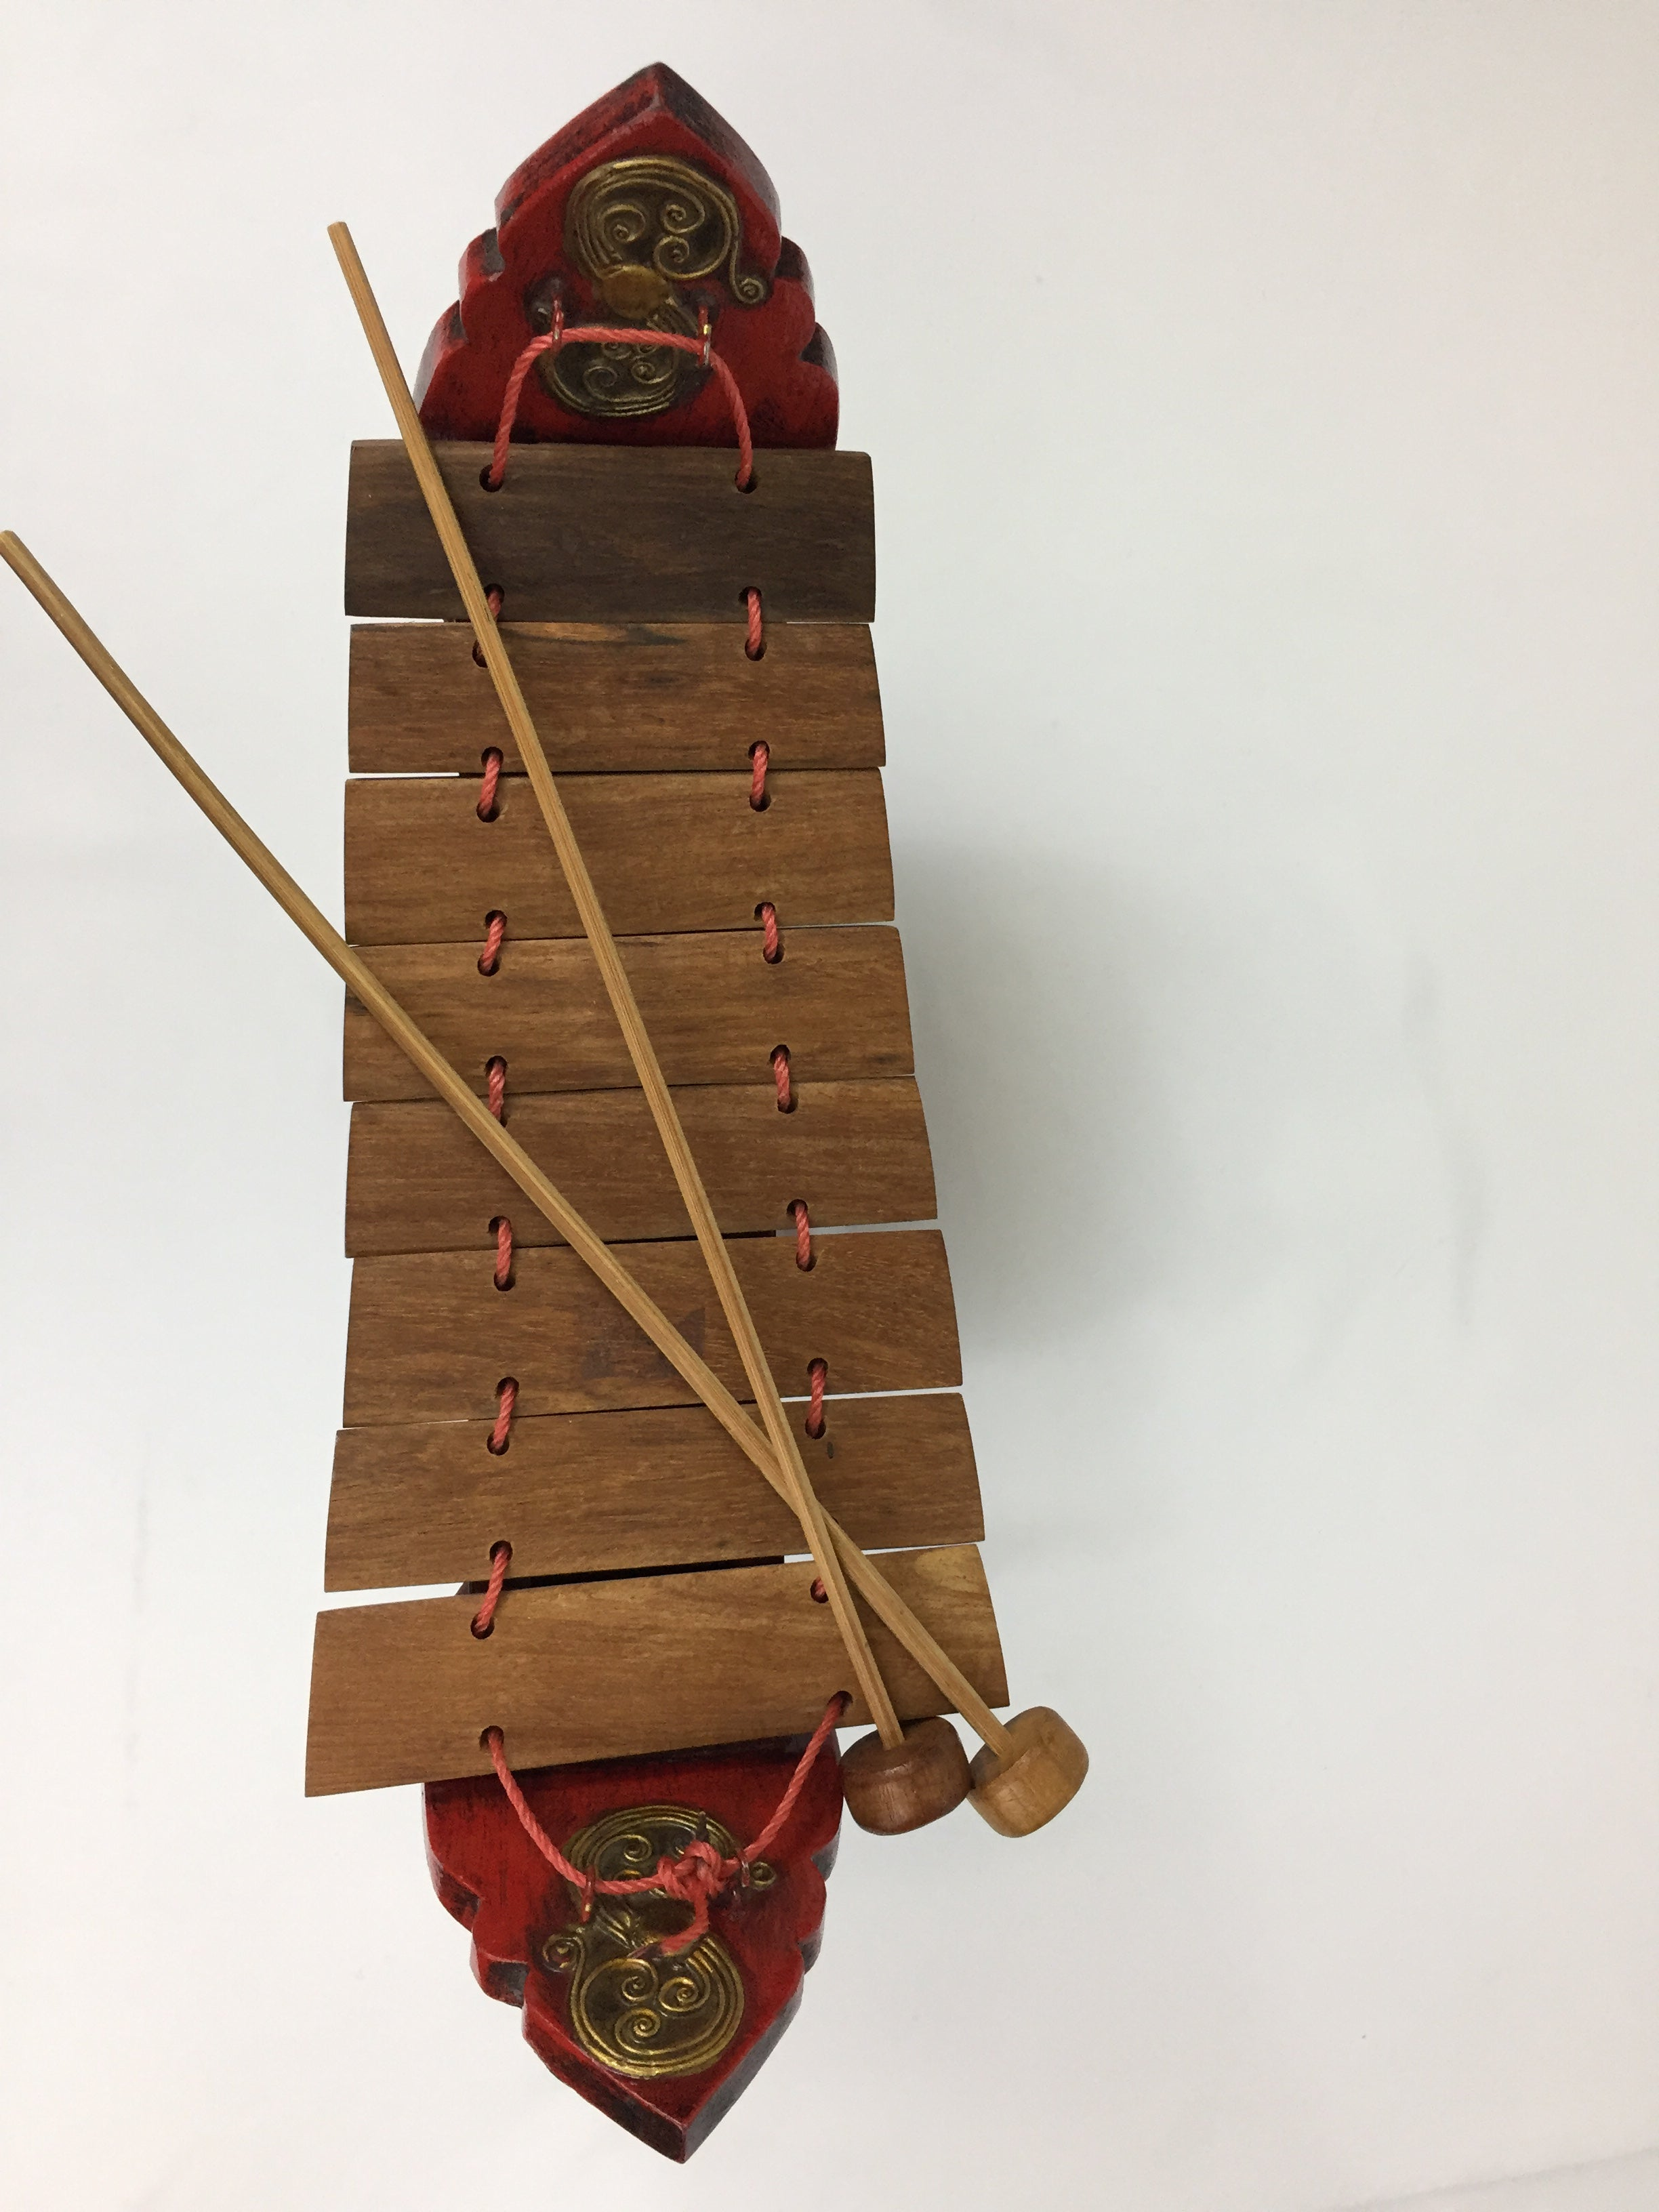 Thai Traditional Musical Instrument Wooden Xylophone.